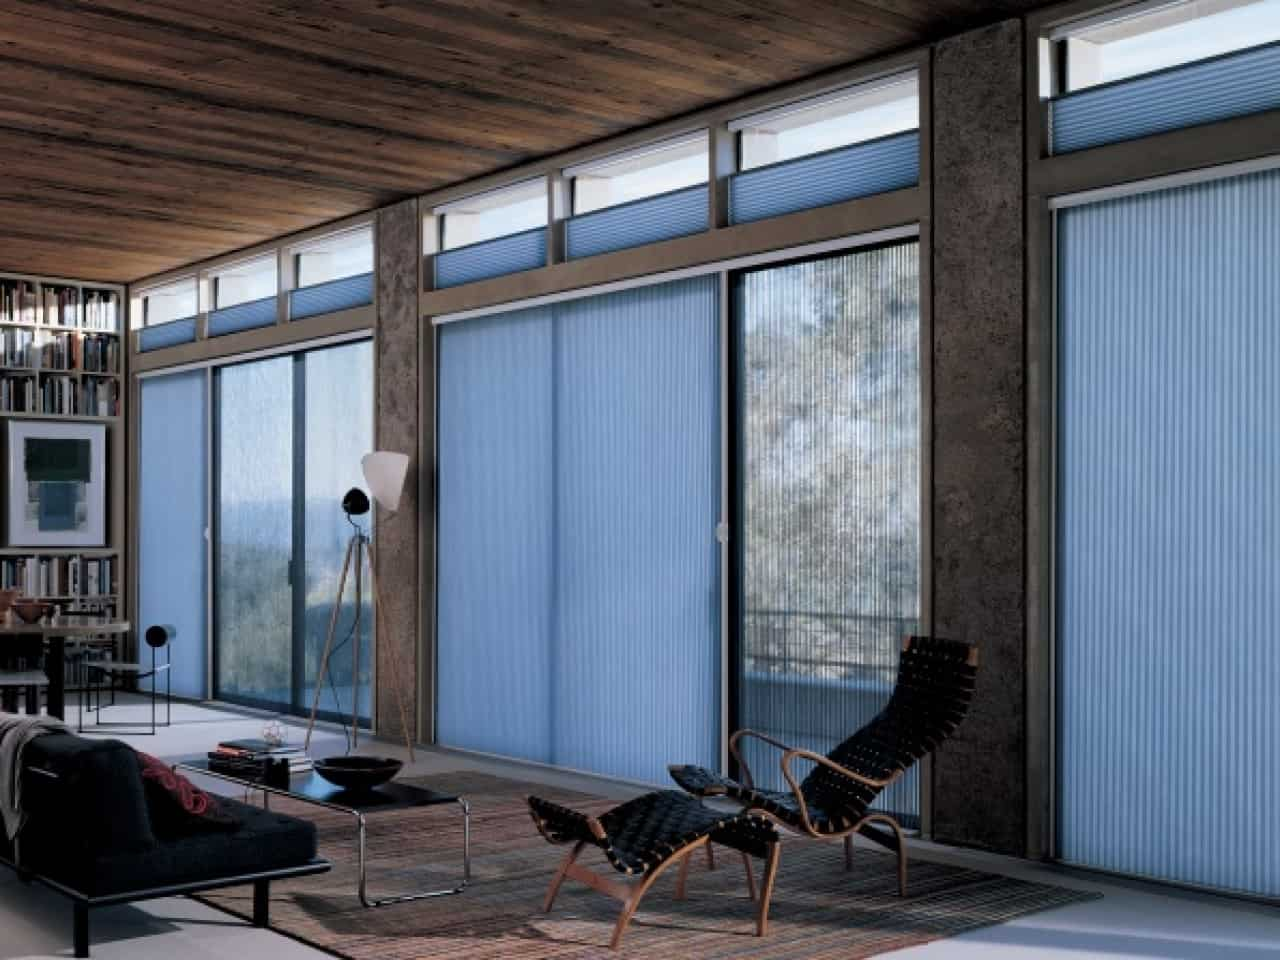 Window Treatments For Sliding Glass Doors IDEAS TIPS - Hunter douglas blinds for patio doors